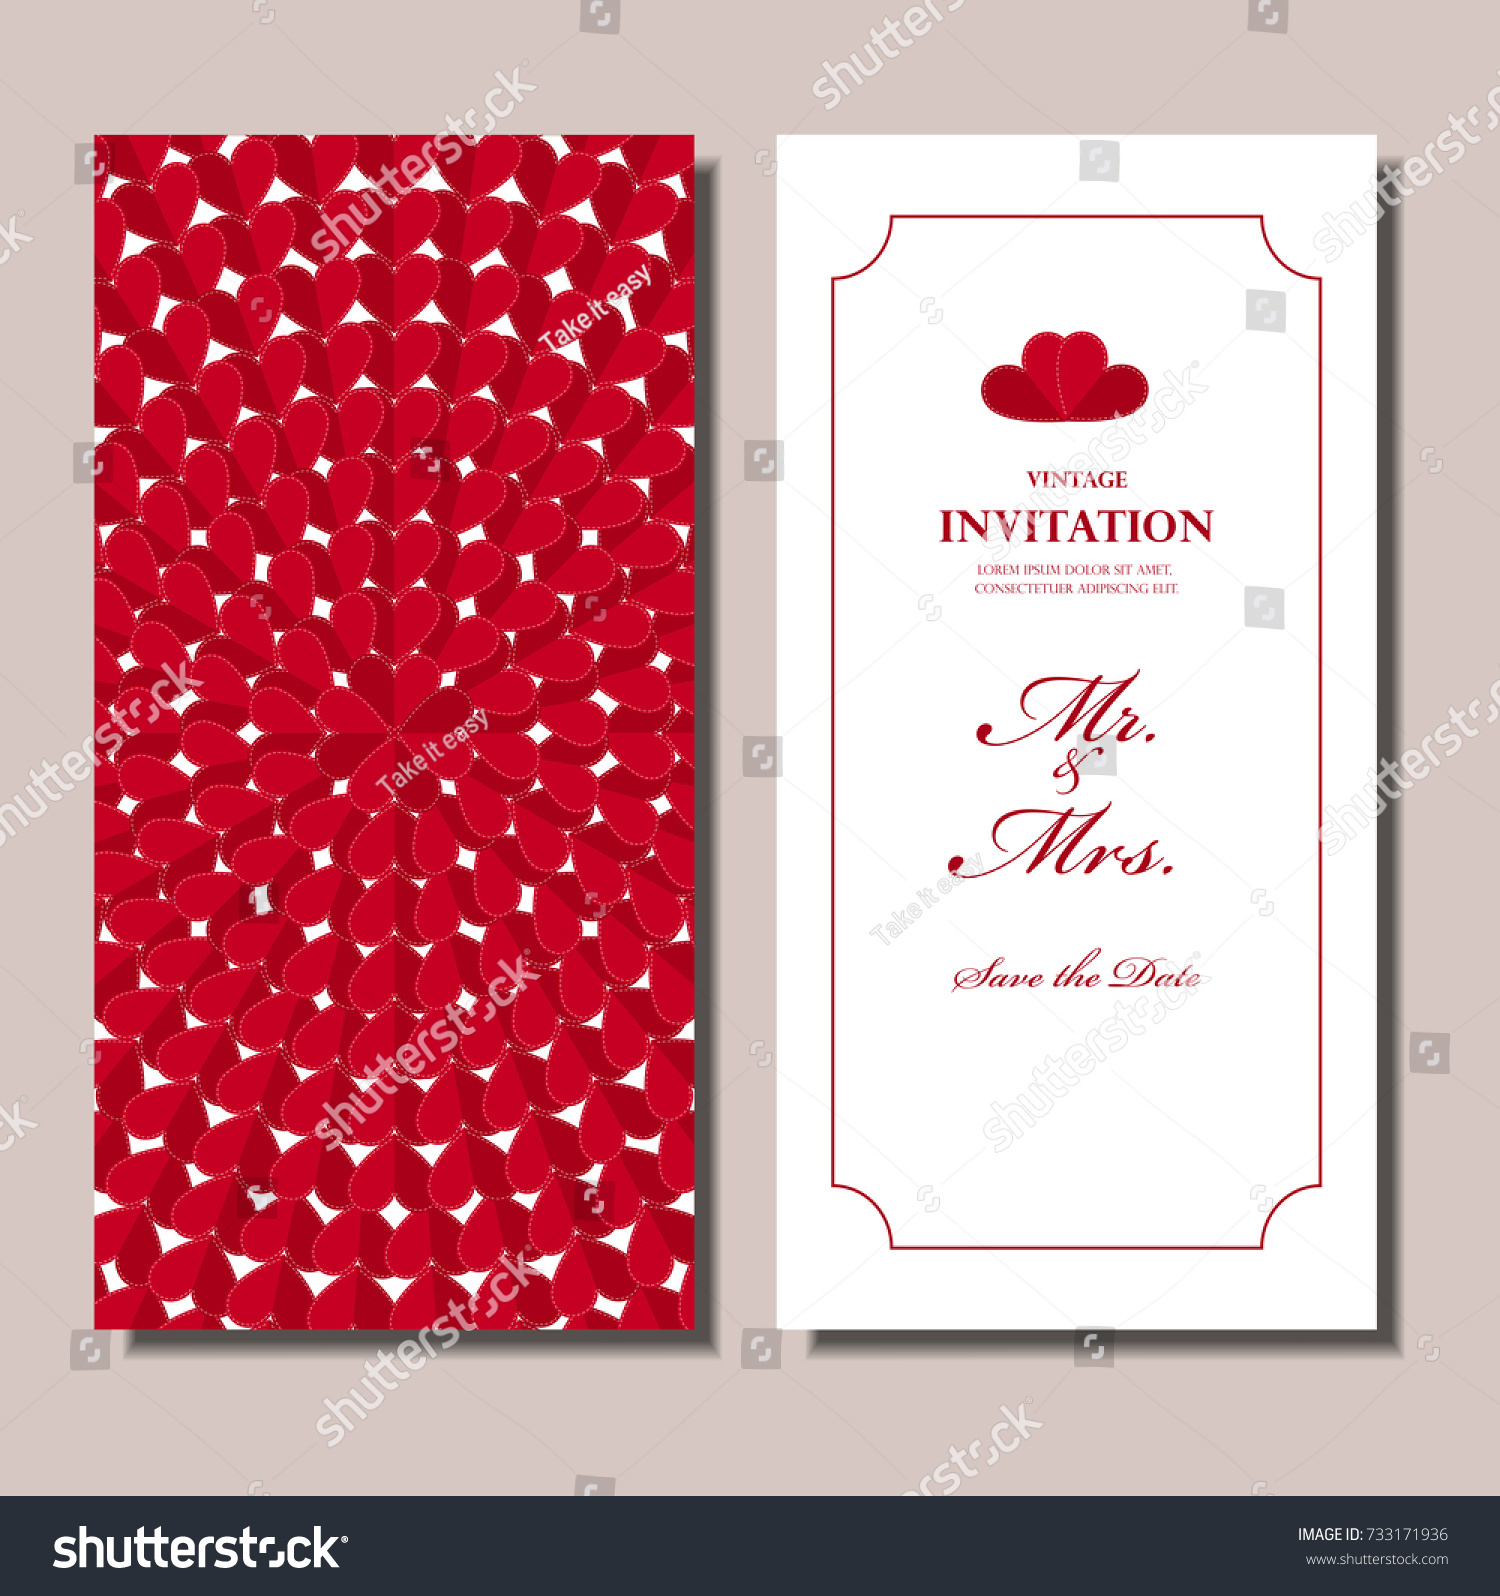 Wedding Invitation Card Red Origami Heart Stock Vector (Royalty Free ...